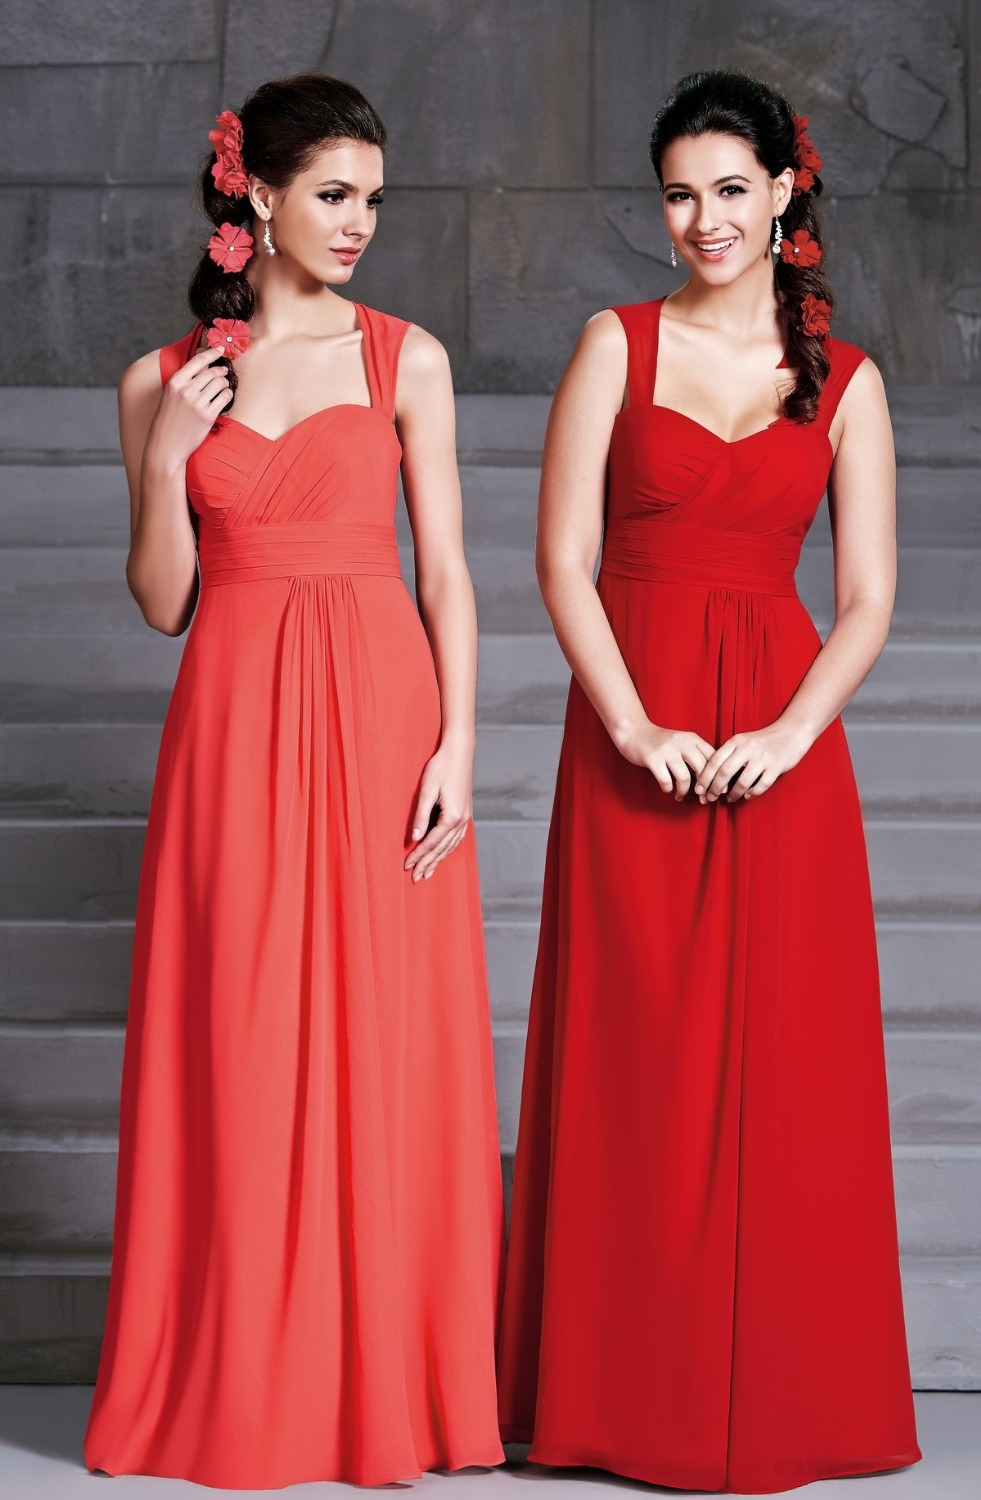 Online get cheap bridesmaid dresses for weddings orange 2017 cheap modest coral orange red chiffon patterns for bridesmaids dresses open back long maid of ombrellifo Gallery